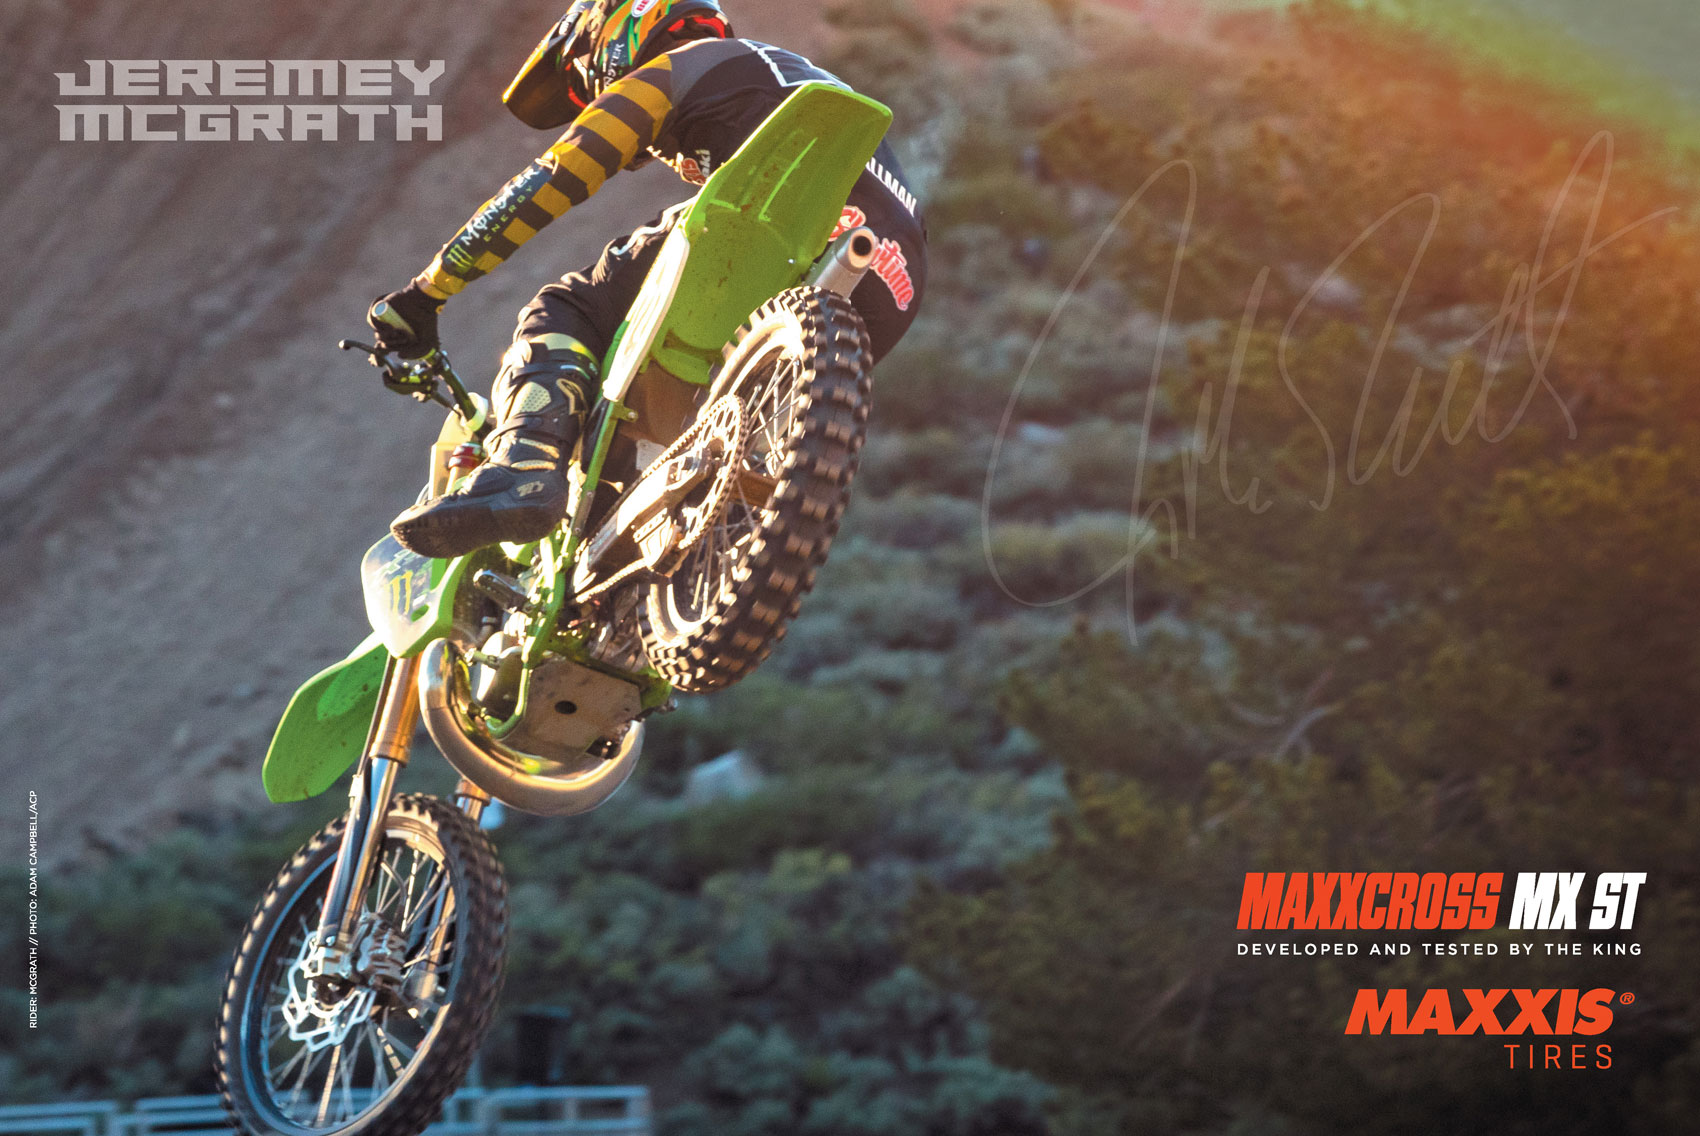 Racer X November 2019 - Maxxis Tires Advertisement